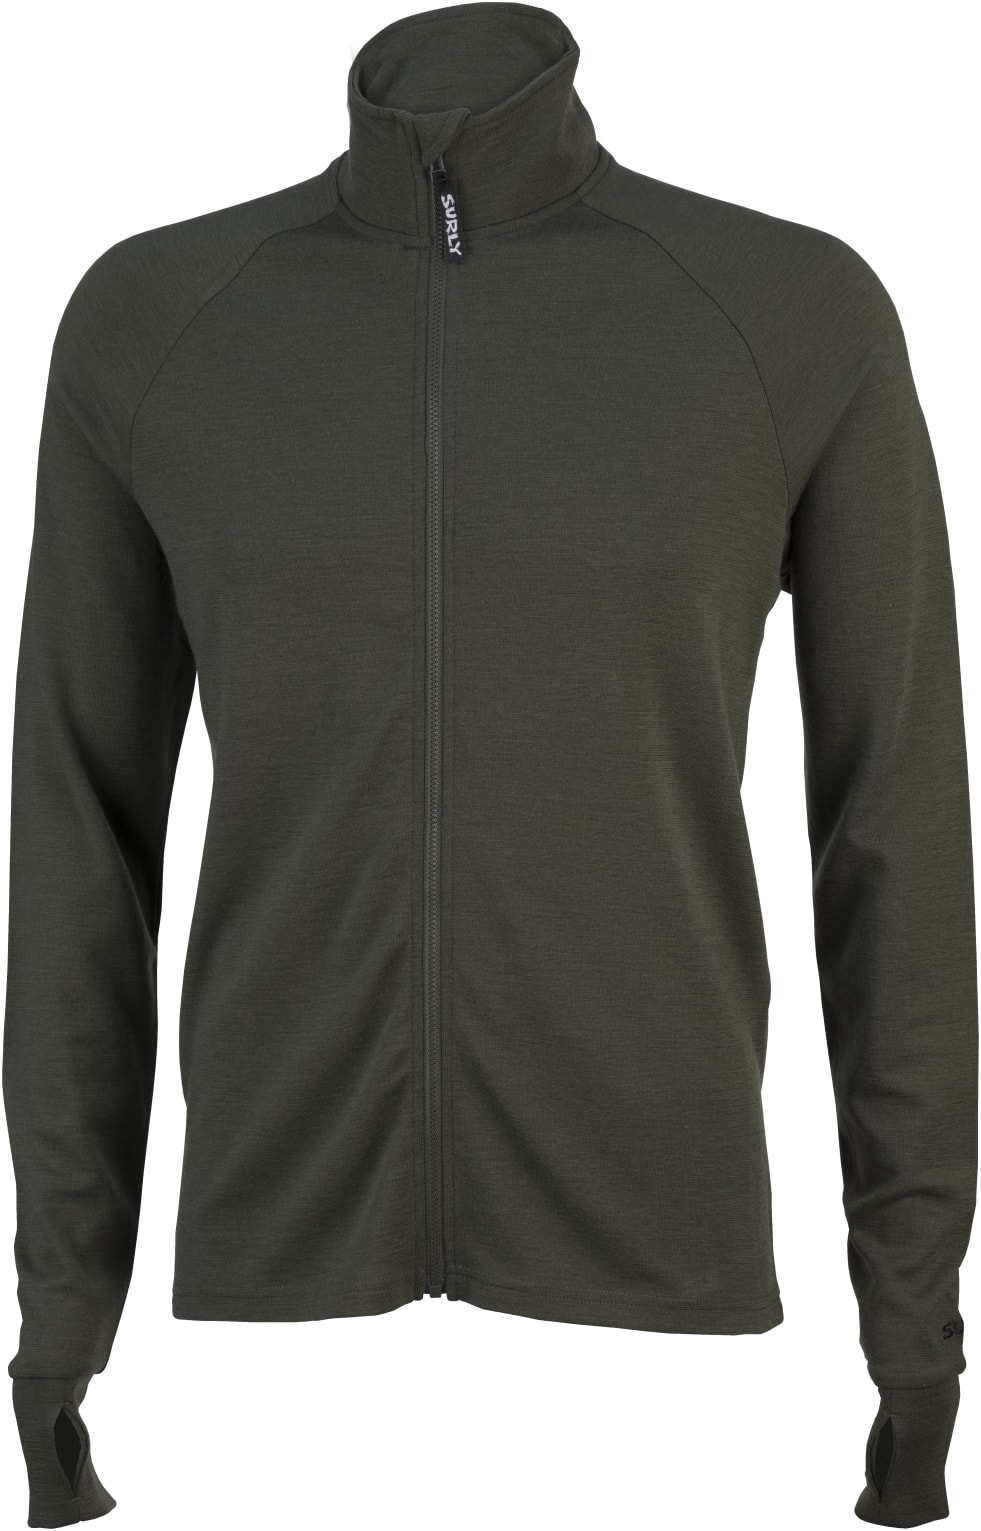 Surly full zip long sleeve bike jersey - olive drab - front view